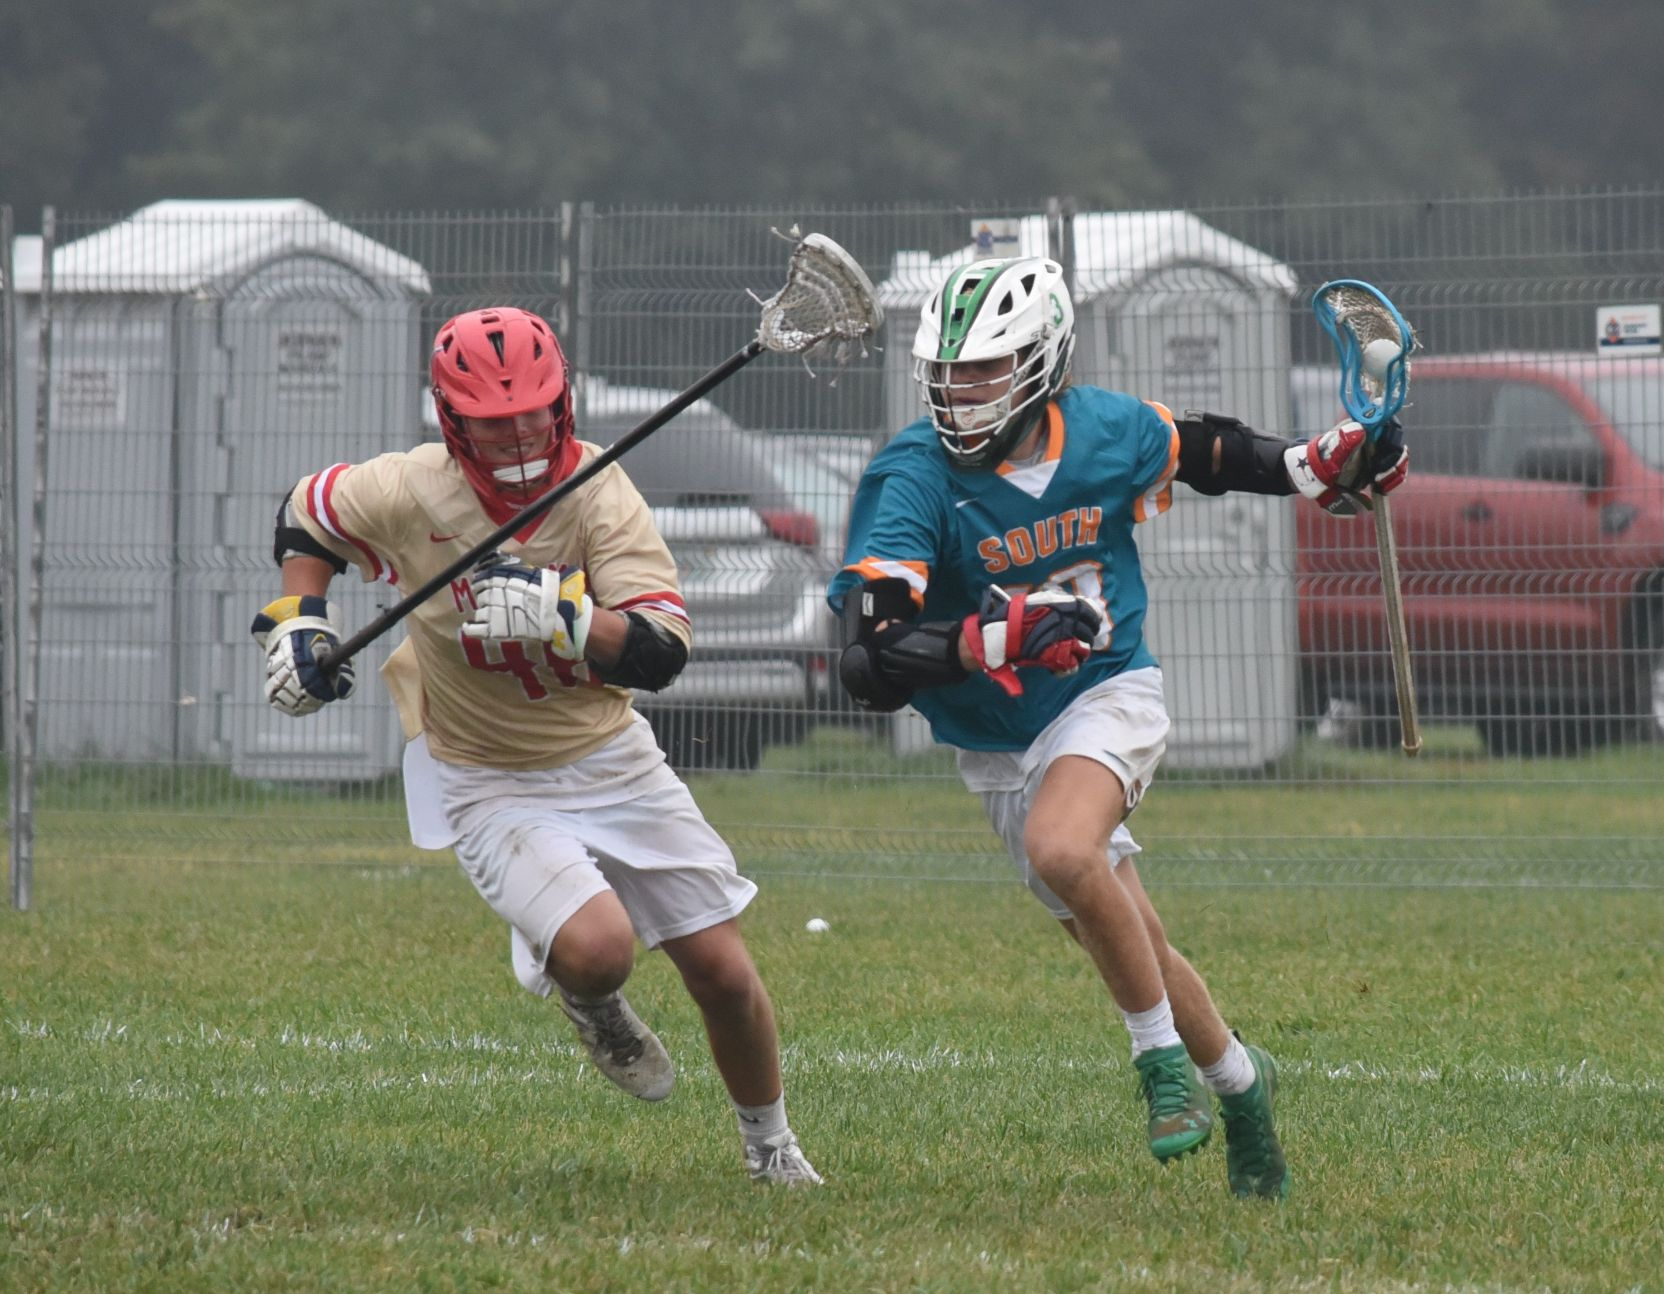 Hill Plunket, 2023 Standout Lacrosse Player at The National All Star Games in Baltimore, Maryland